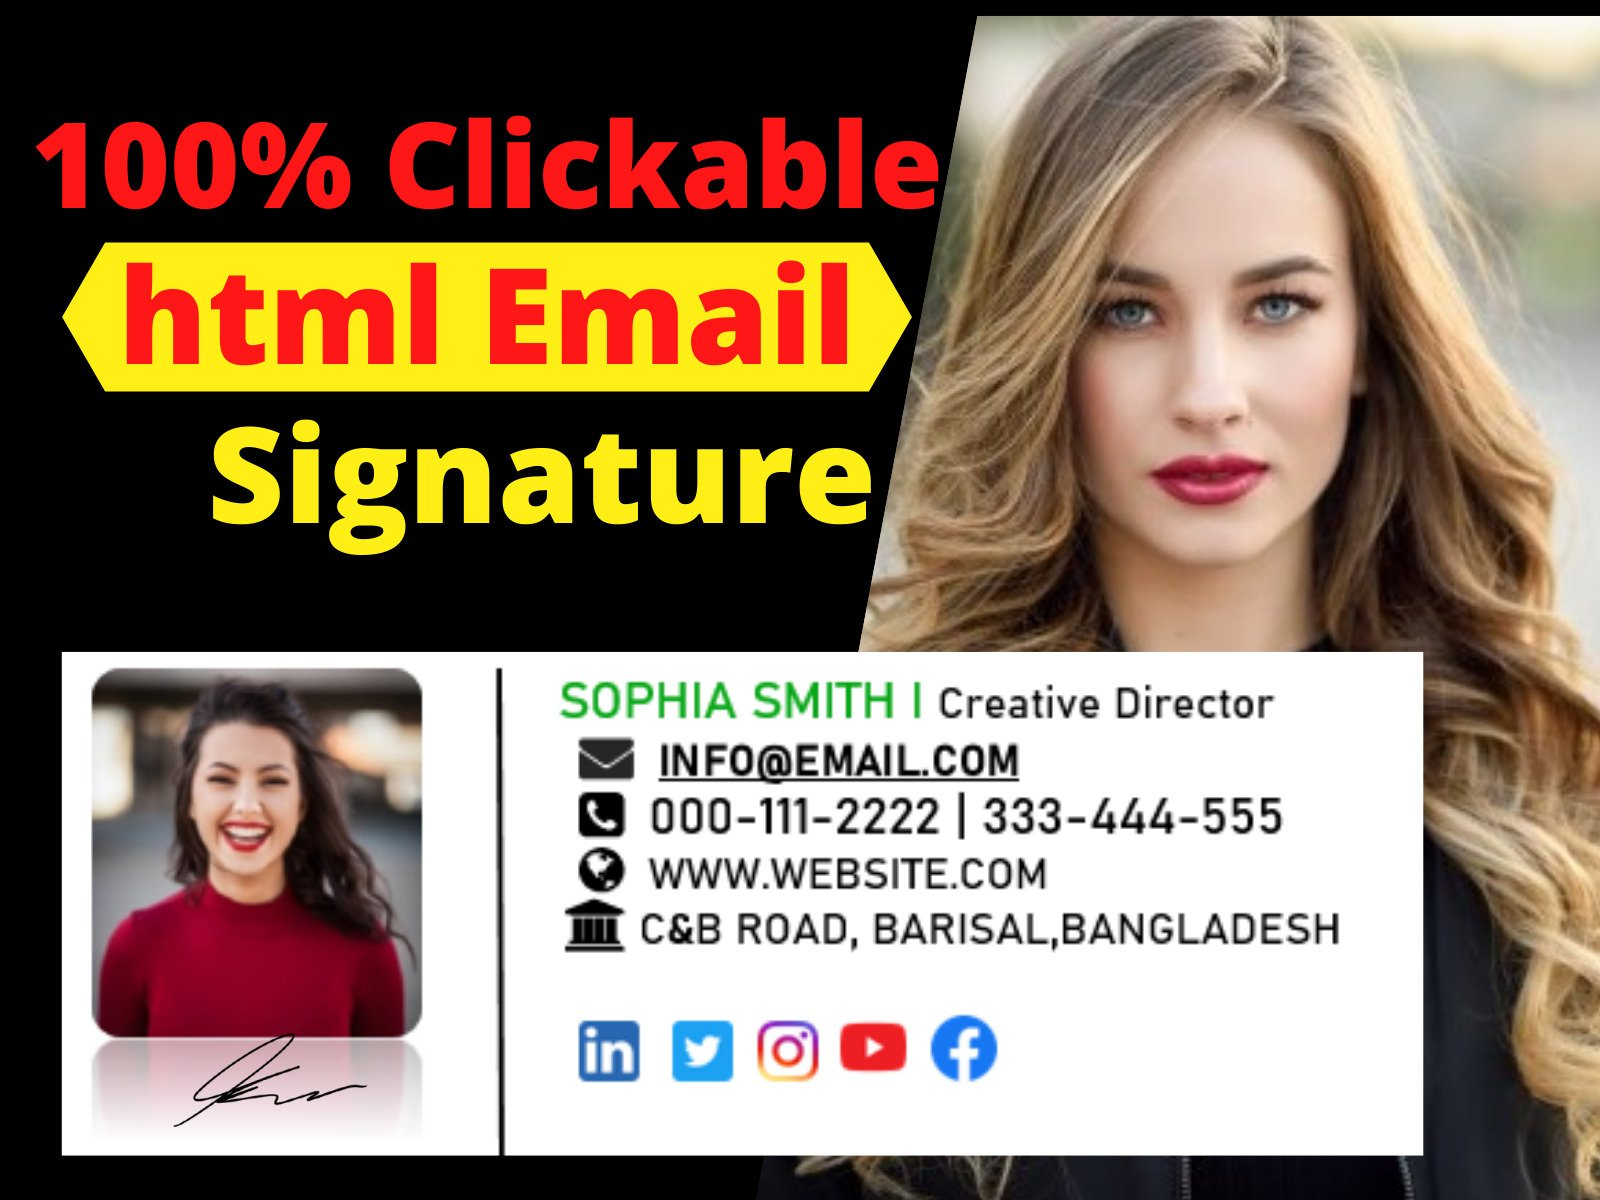 I will design a professional clickable HTML email signature